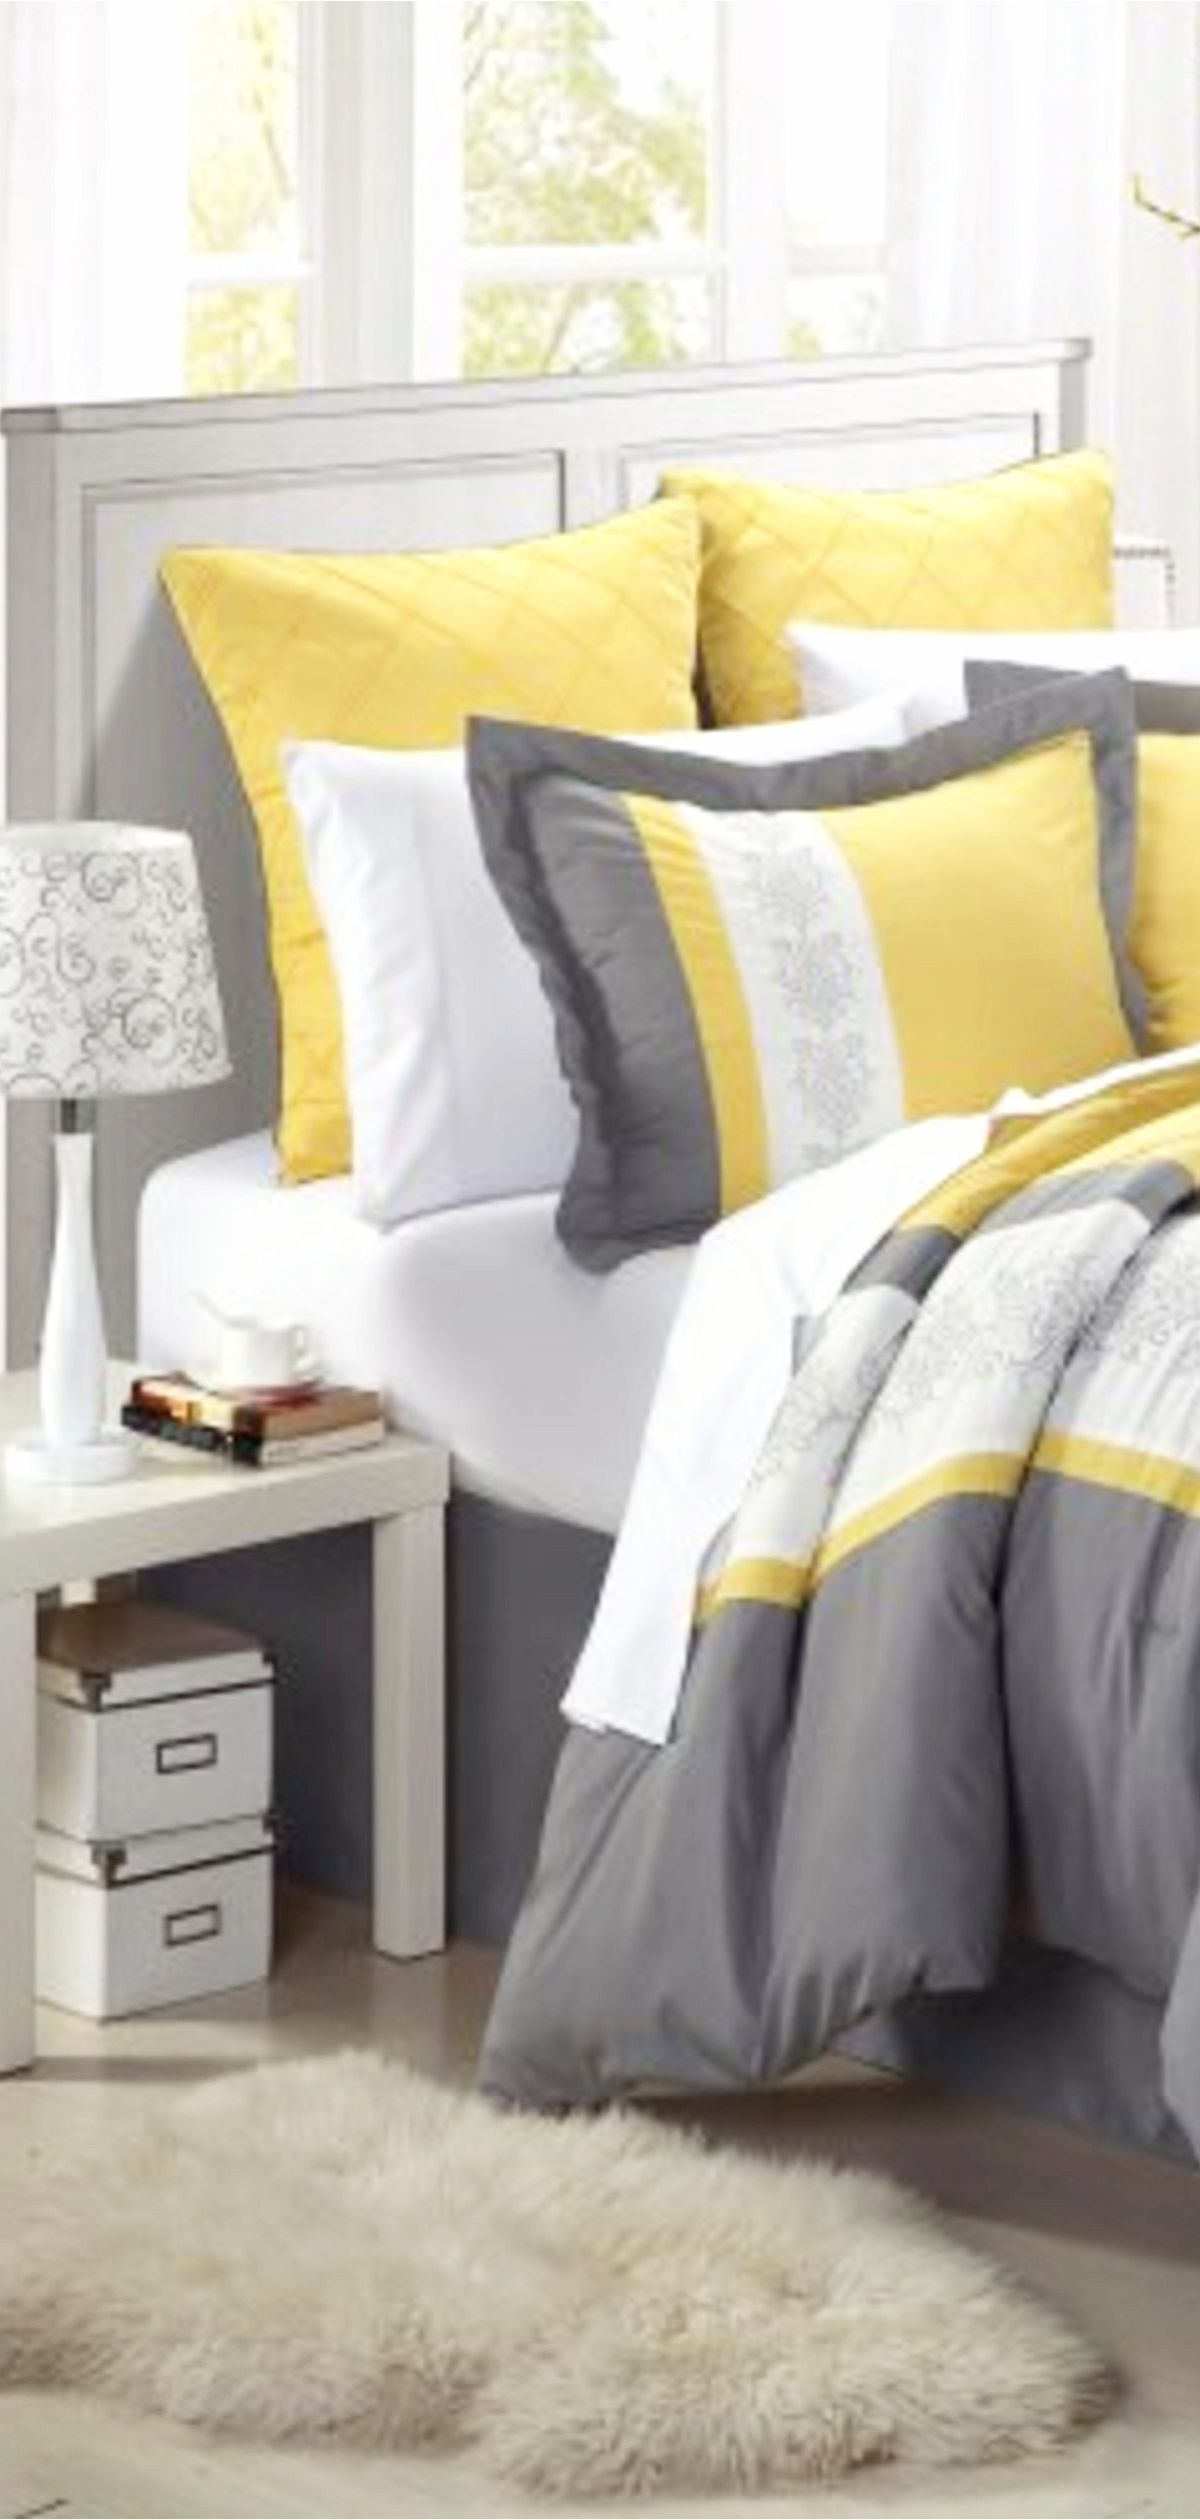 Gray And Yellow Bedroom Ideas Yellow And Grey Bedding Accent Colors Bedroom Decor Ideas Clever Diy Ideas Yellow Bedroom Yellow Bedding Yellow And Gray Bedding